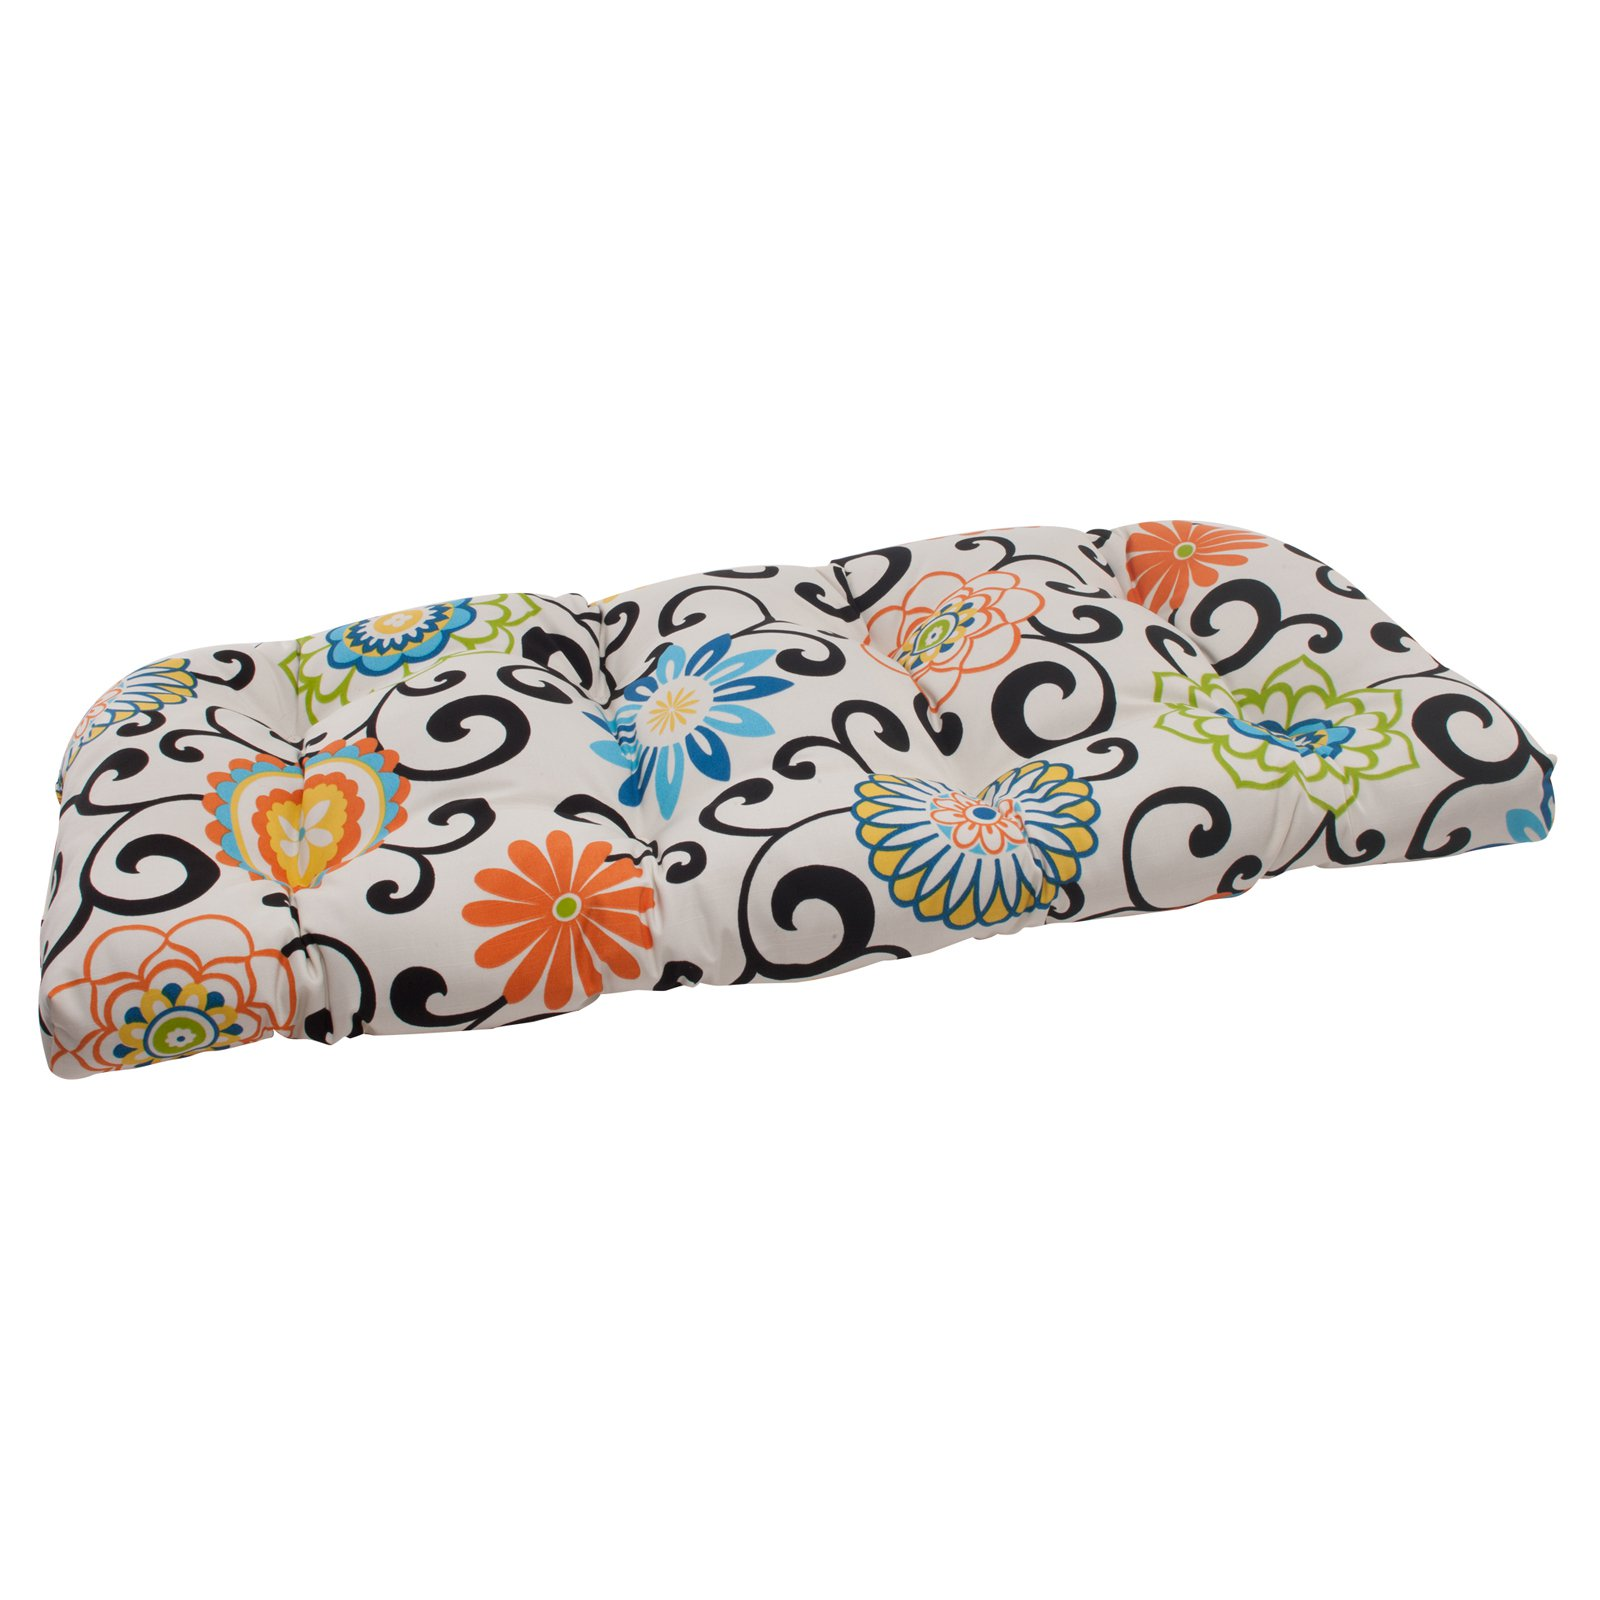 Pillow Perfect Pom Pom Play 44 in. Wicker Loveseat Cushion